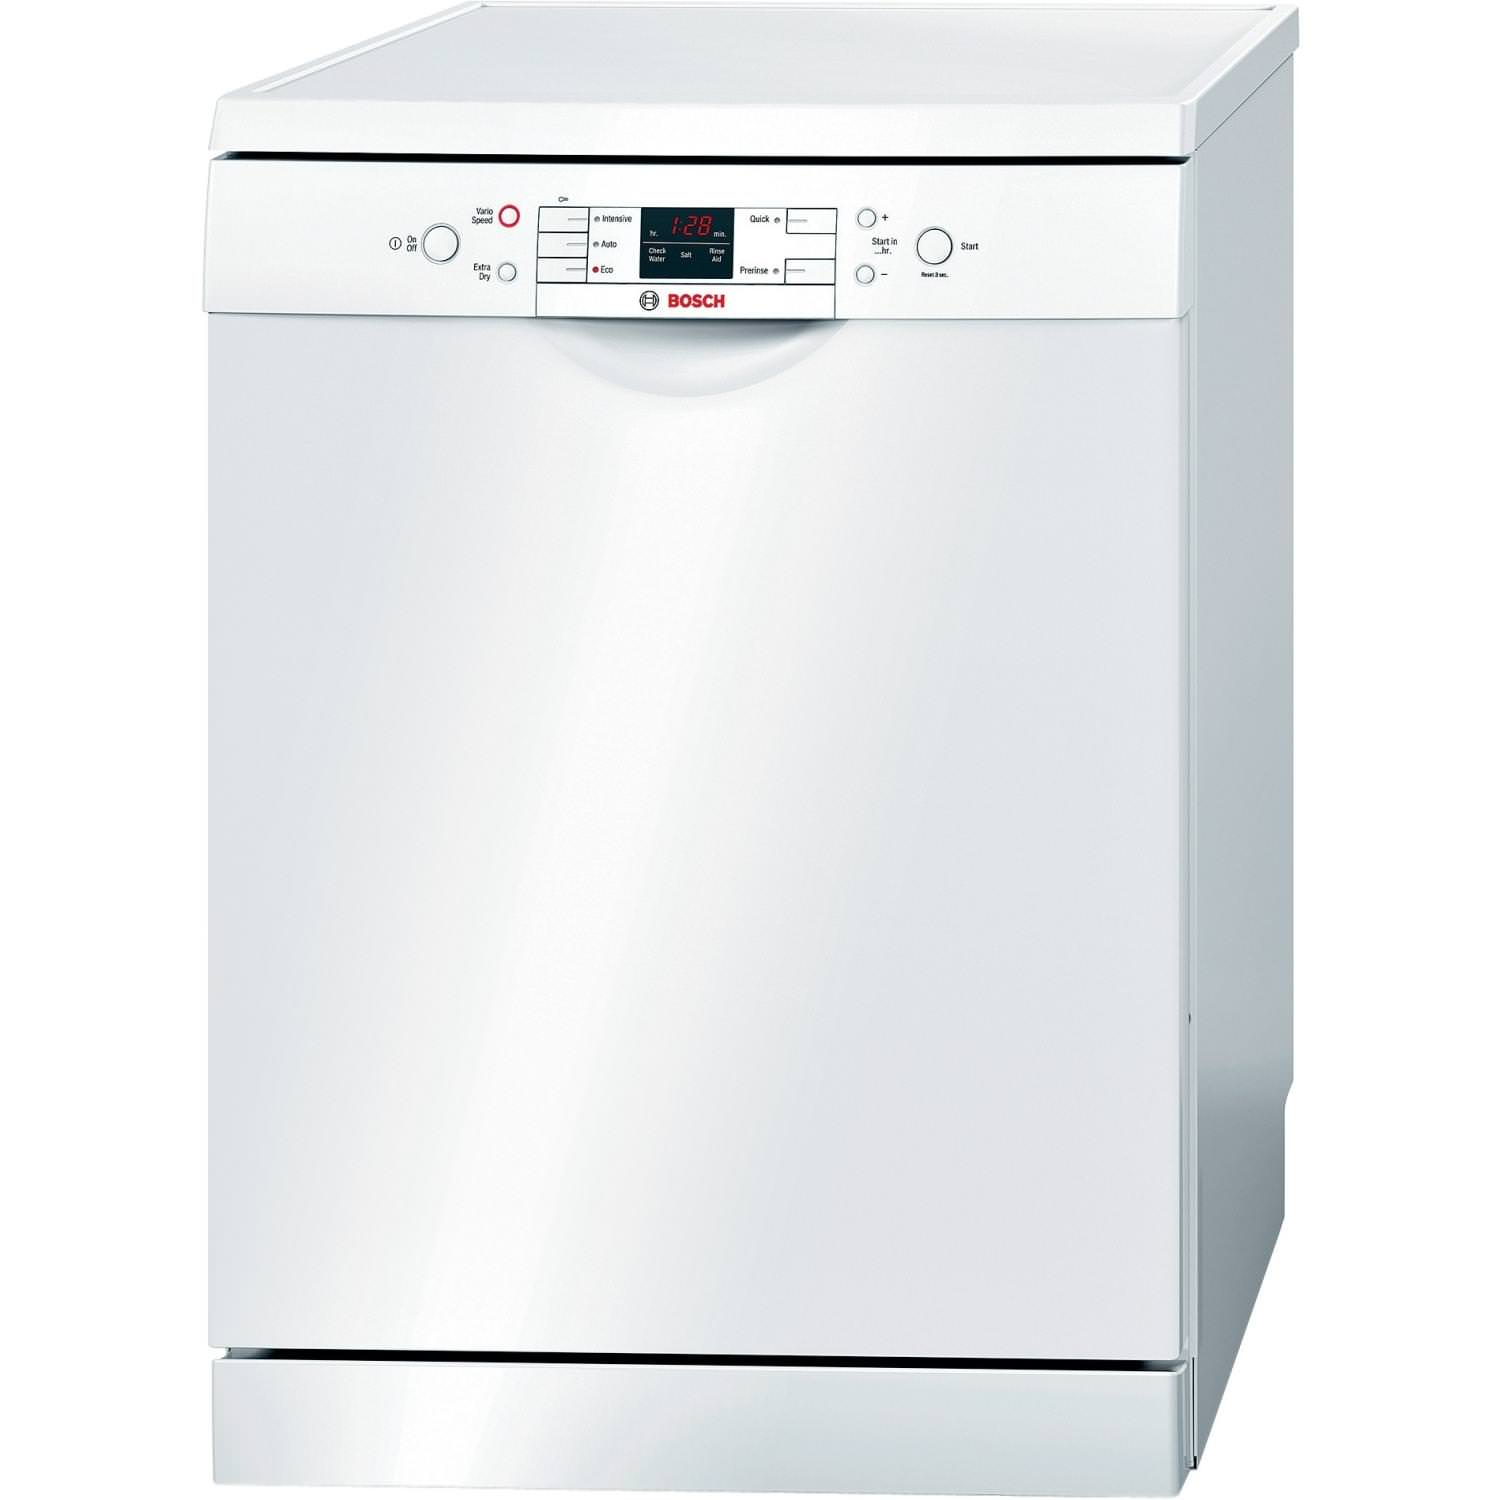 Bosch SMS58M32GB 60cm Freestanding Dishwasher